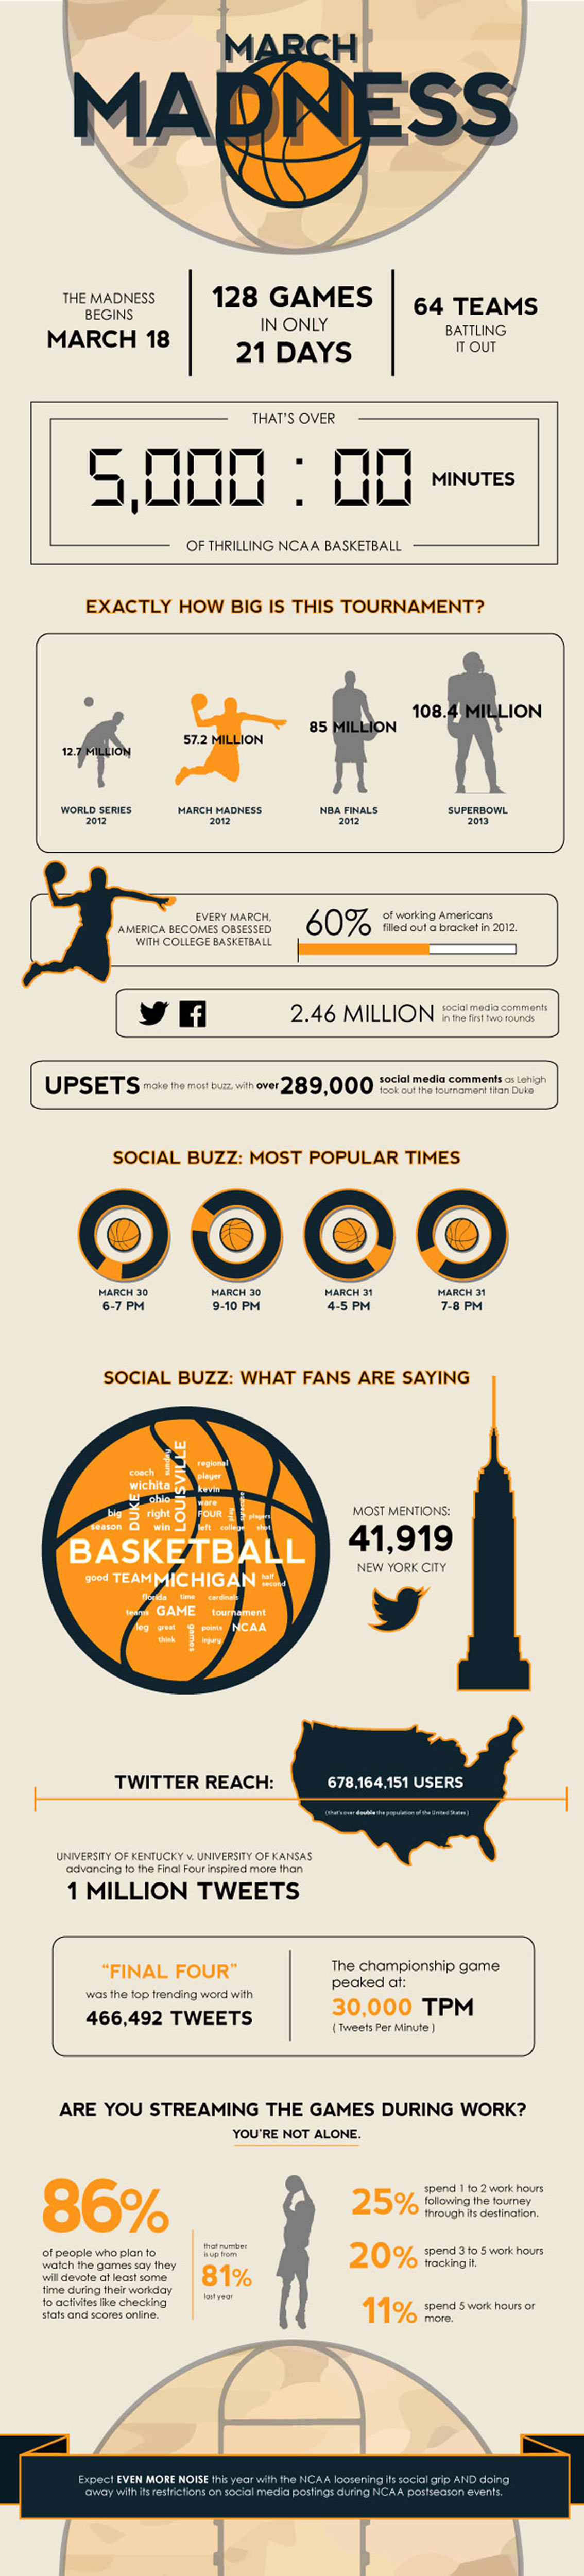 March Madness By the Numbers Infographic